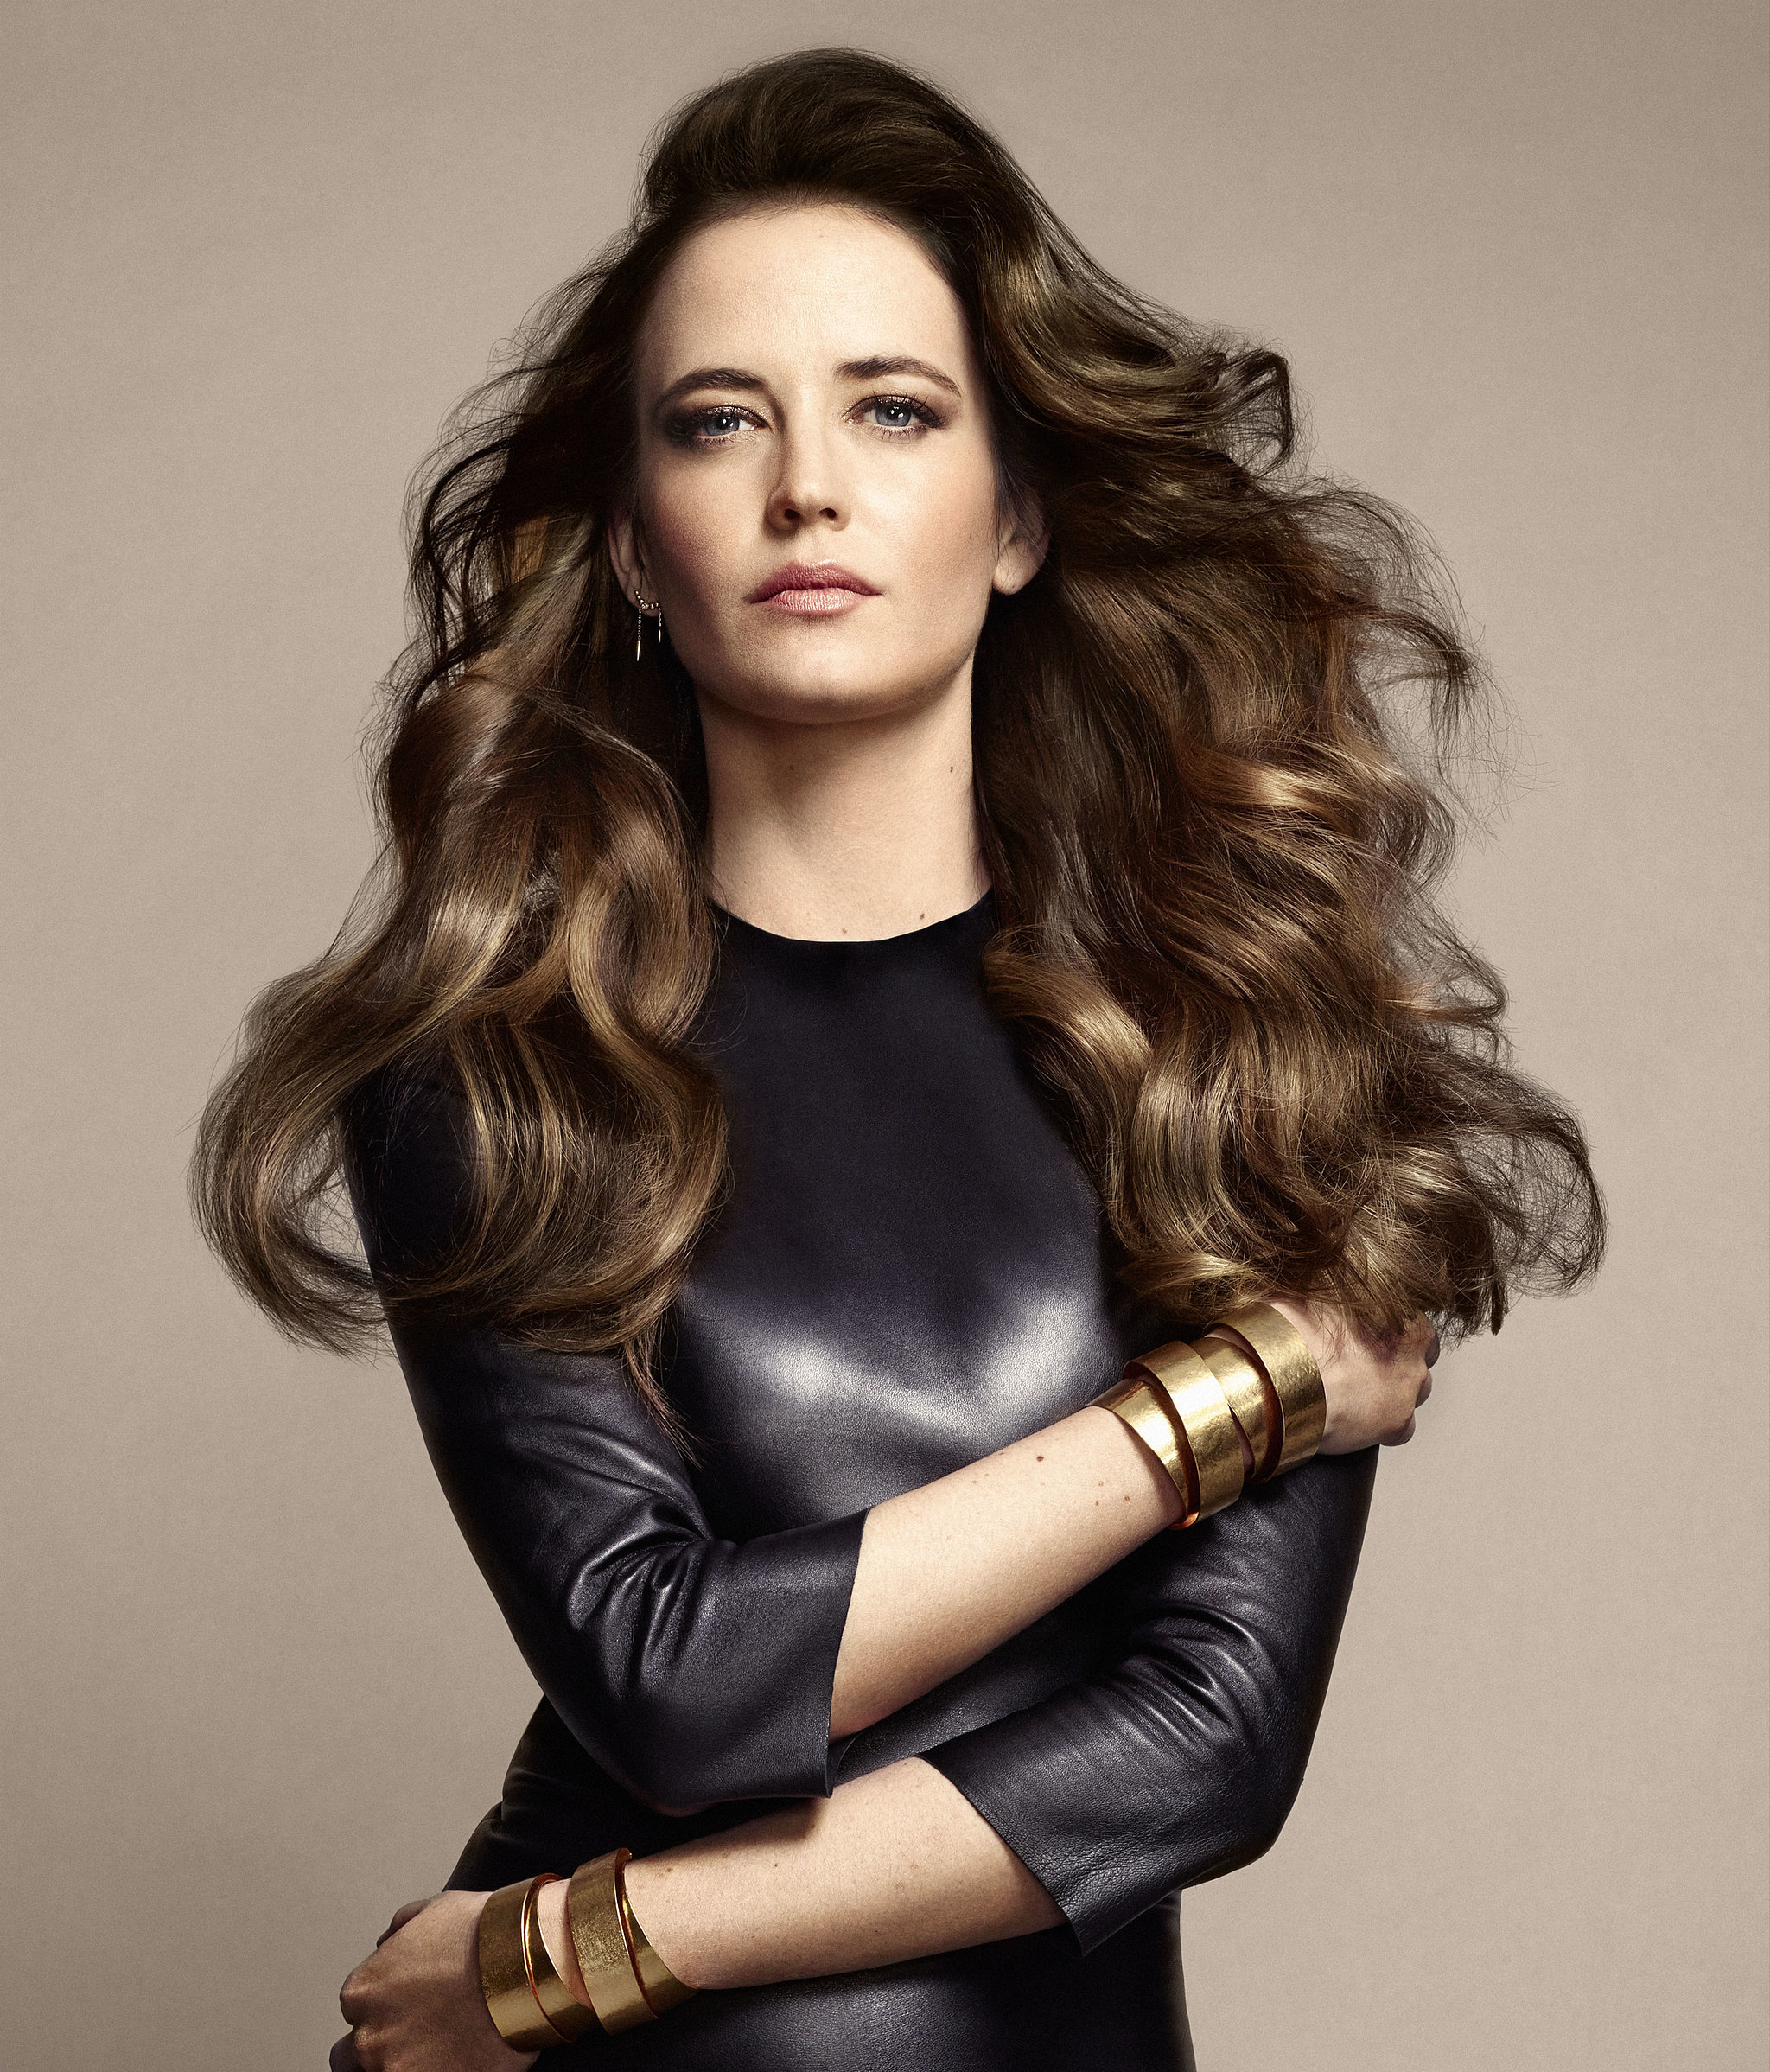 Eva Green, Post-Bronde | Brunettes, Here's How to Test-Drive Going ... Eva Green